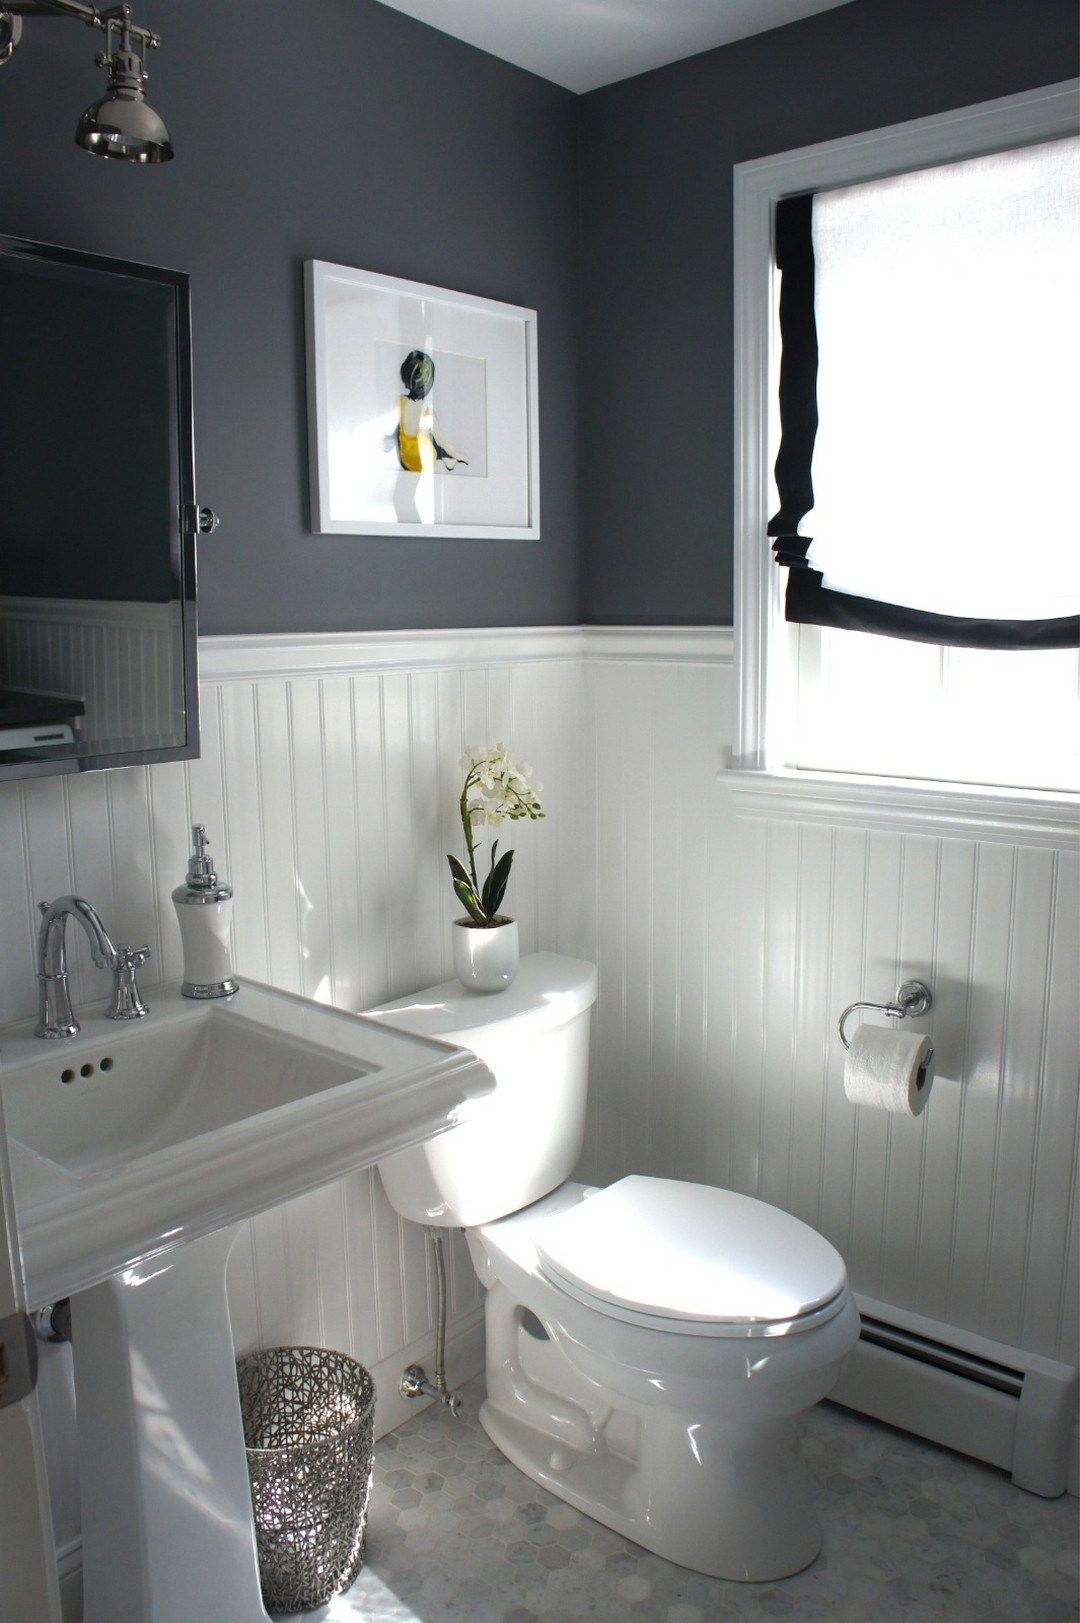 99 small master bathroom makeover ideas on a budget 48 Small bathroom makeovers